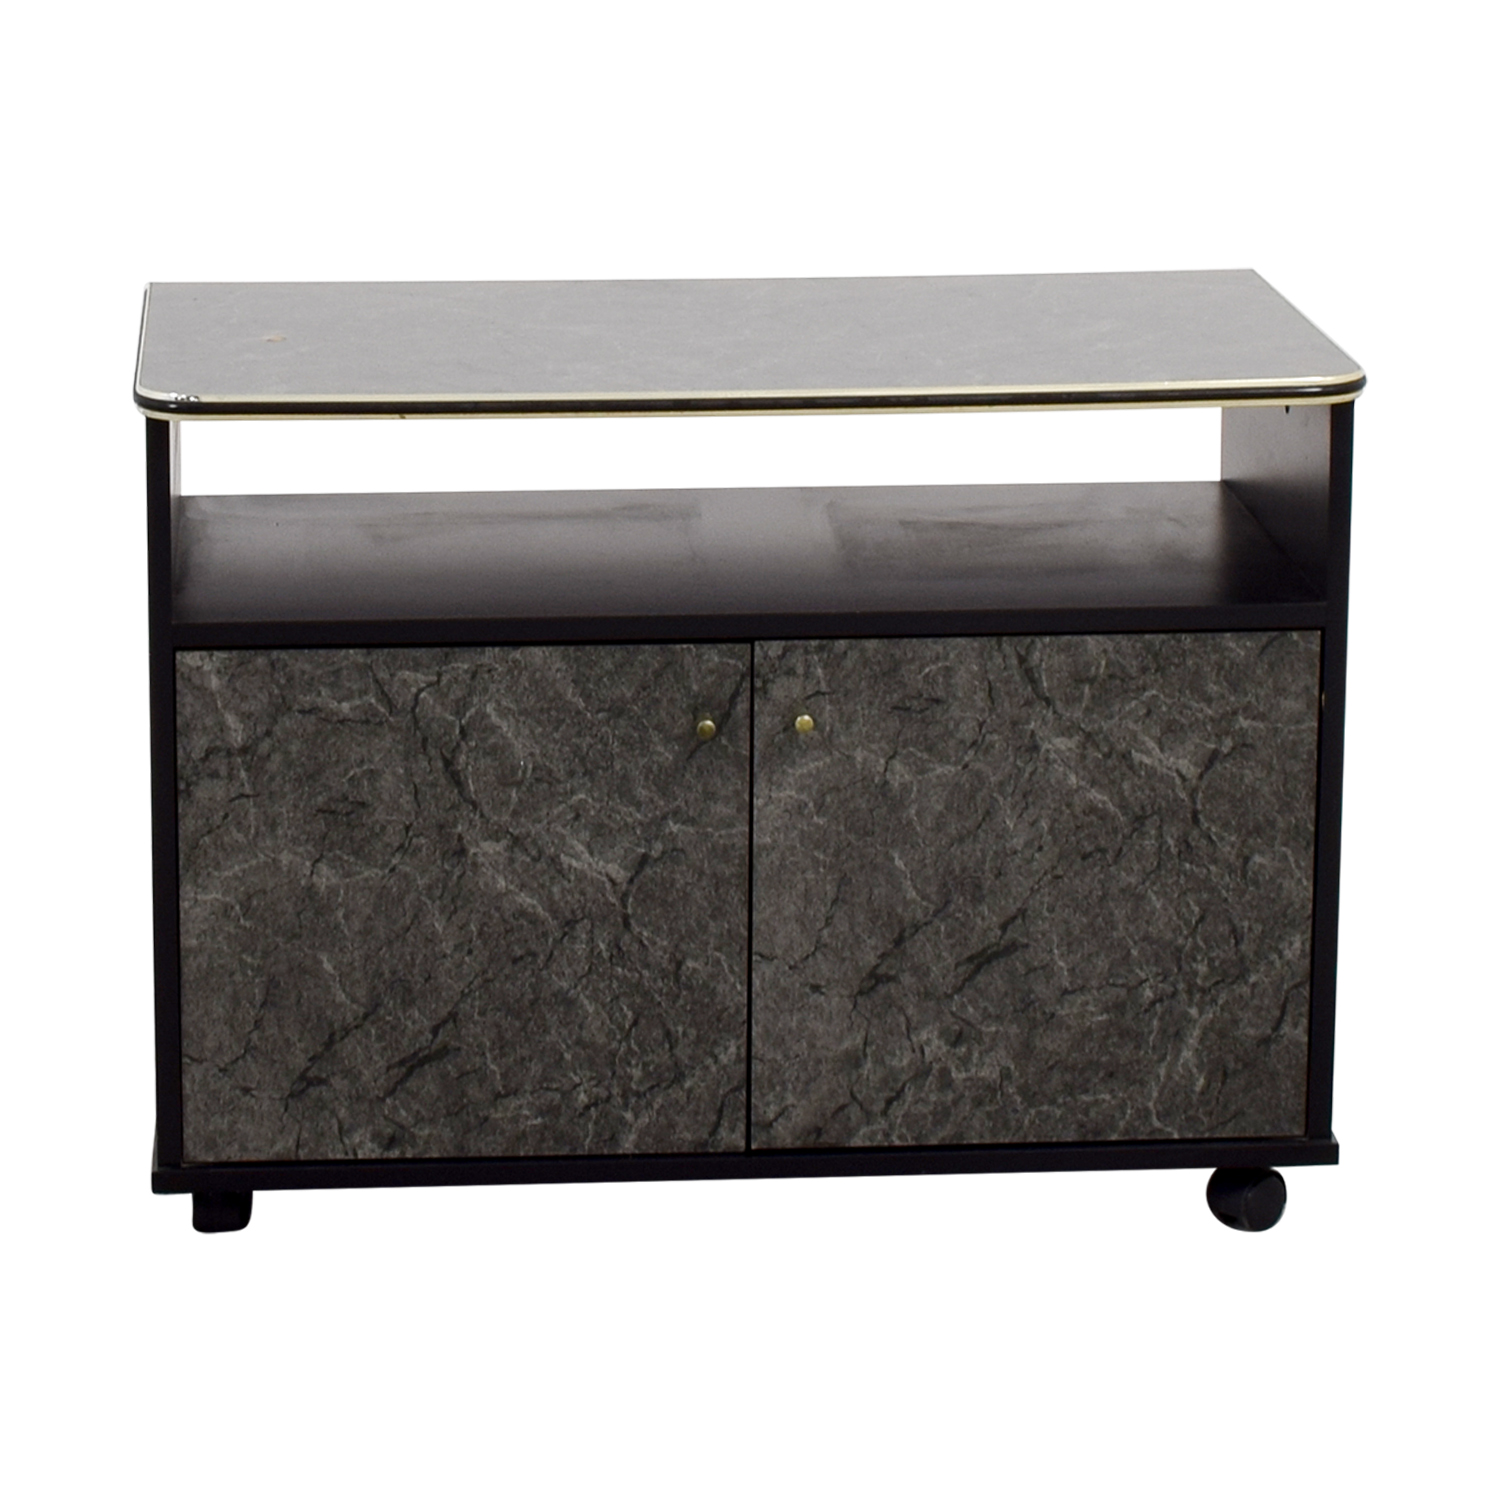 Marbleized Brown Entertainment Center Storage